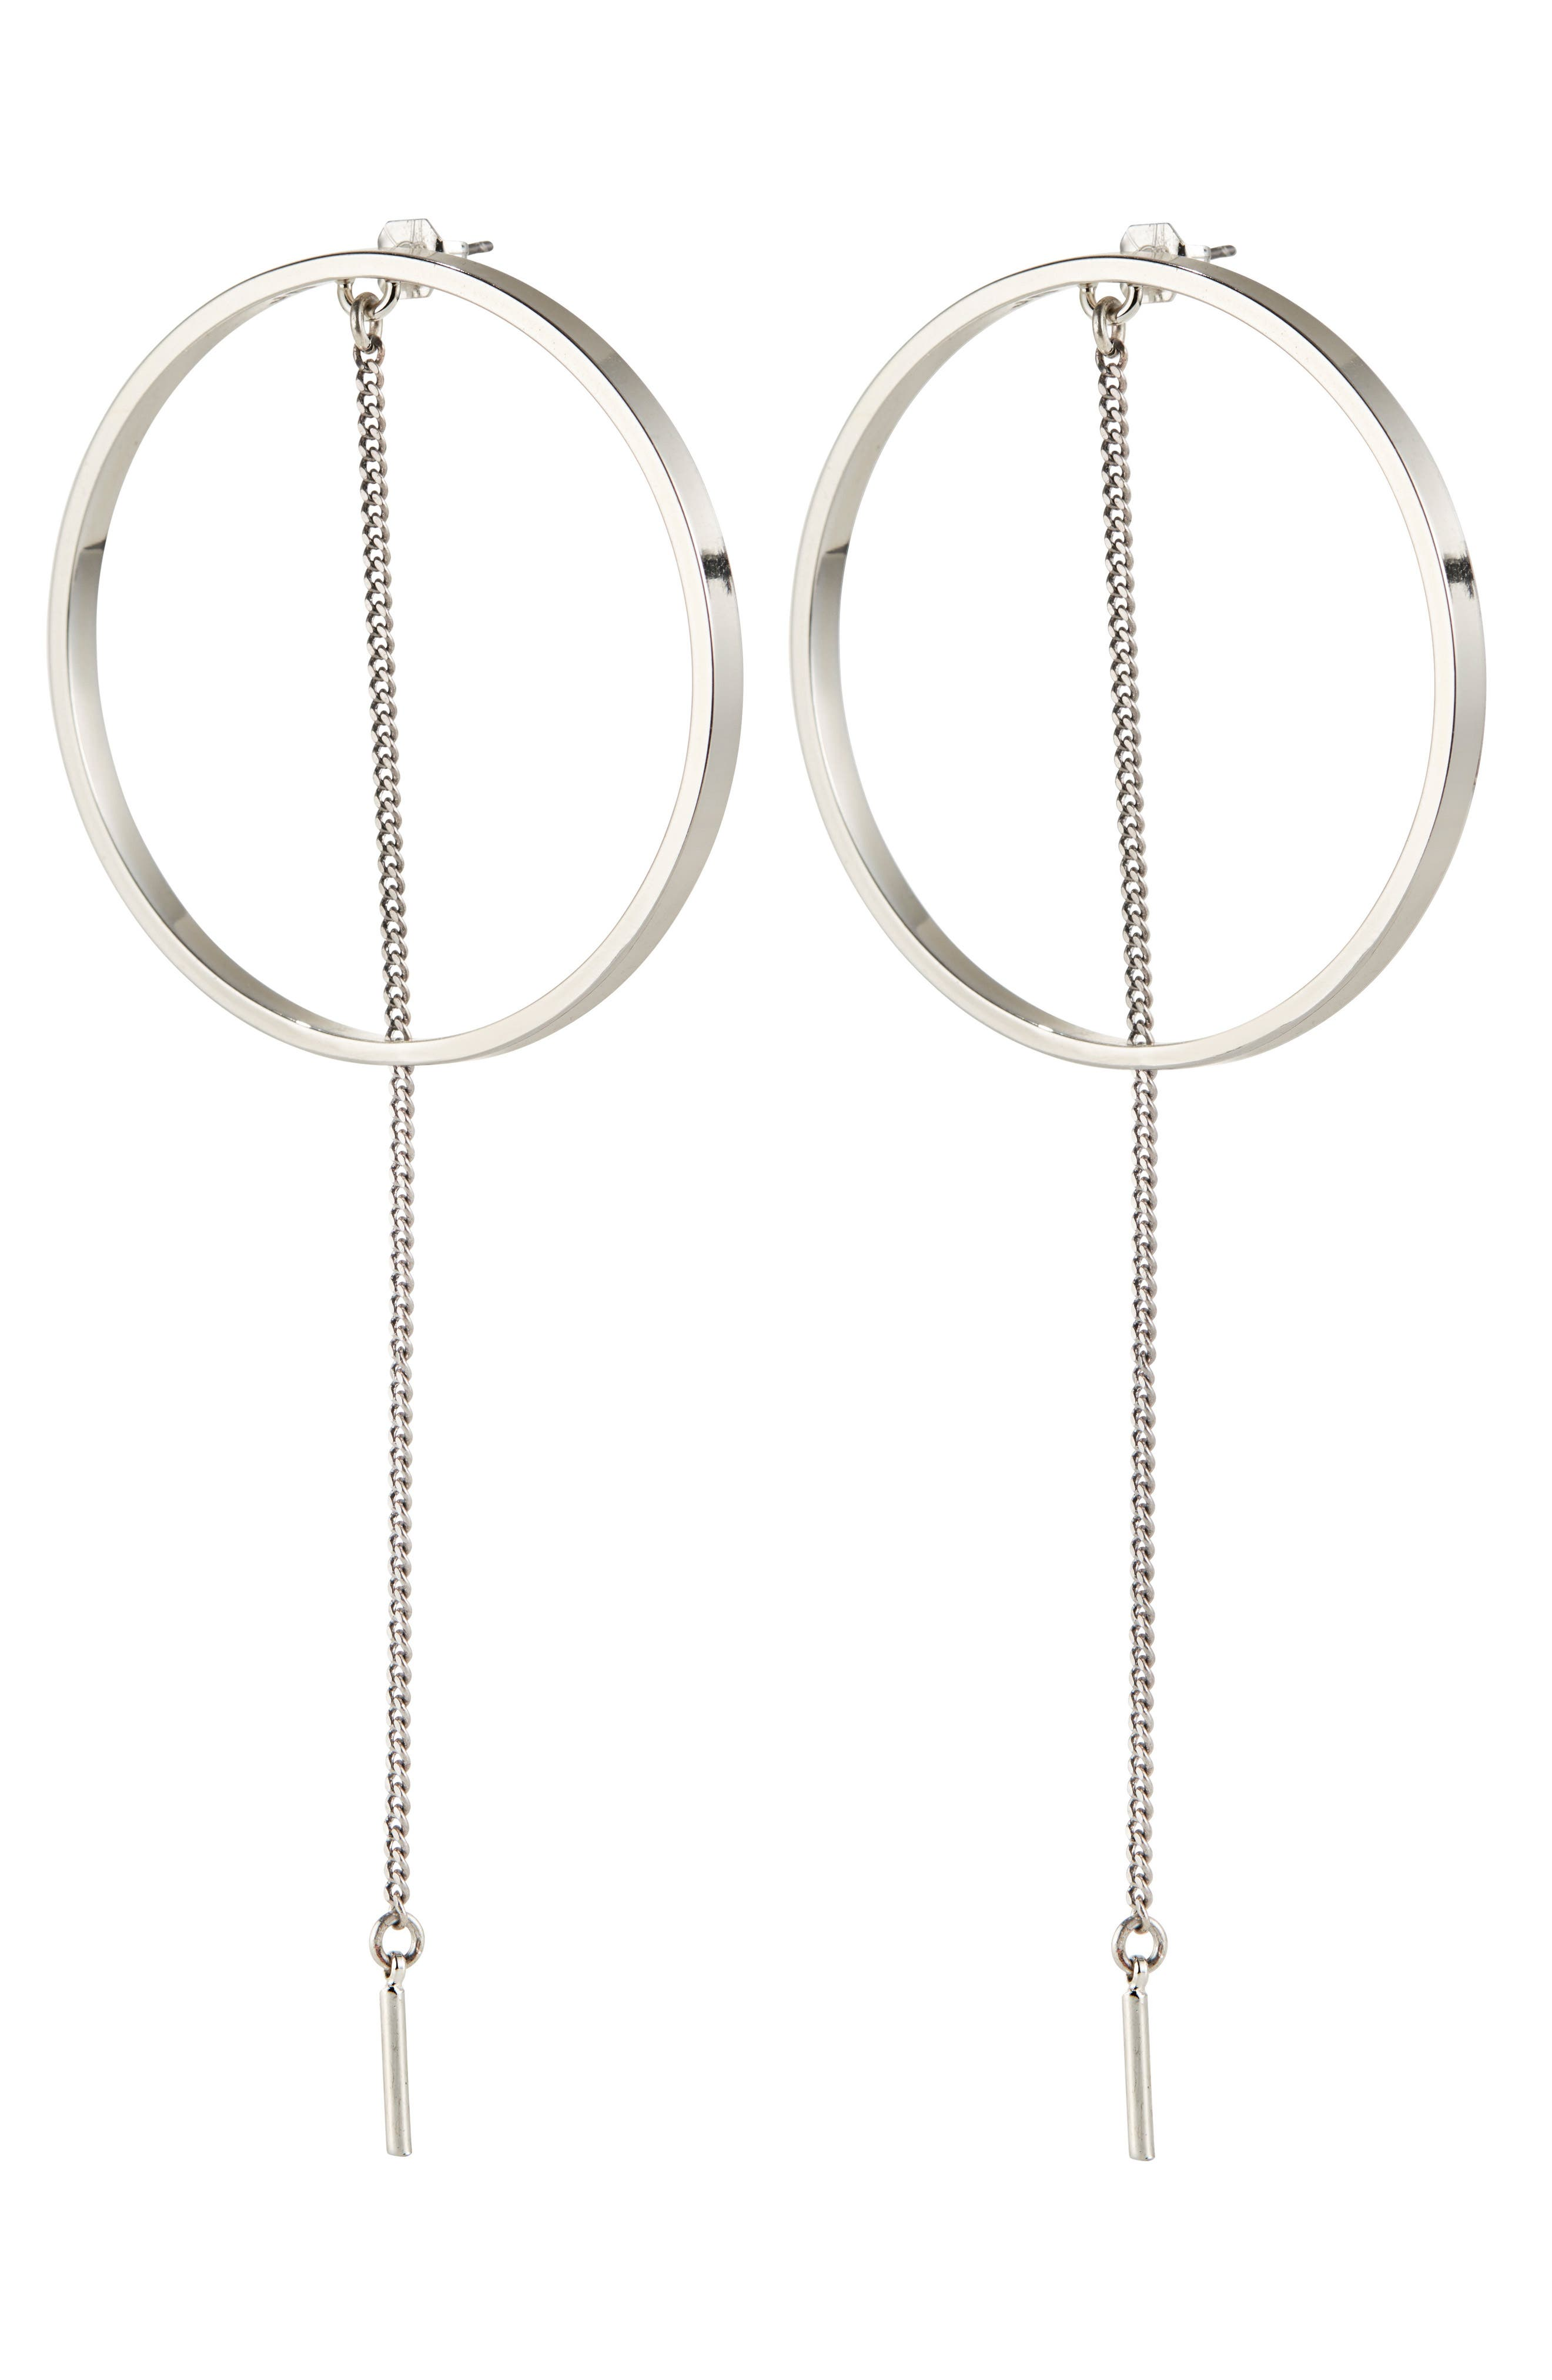 Alternate Image 1 Selected - Jenny Bird Rhine Frontal Hoop Earrings